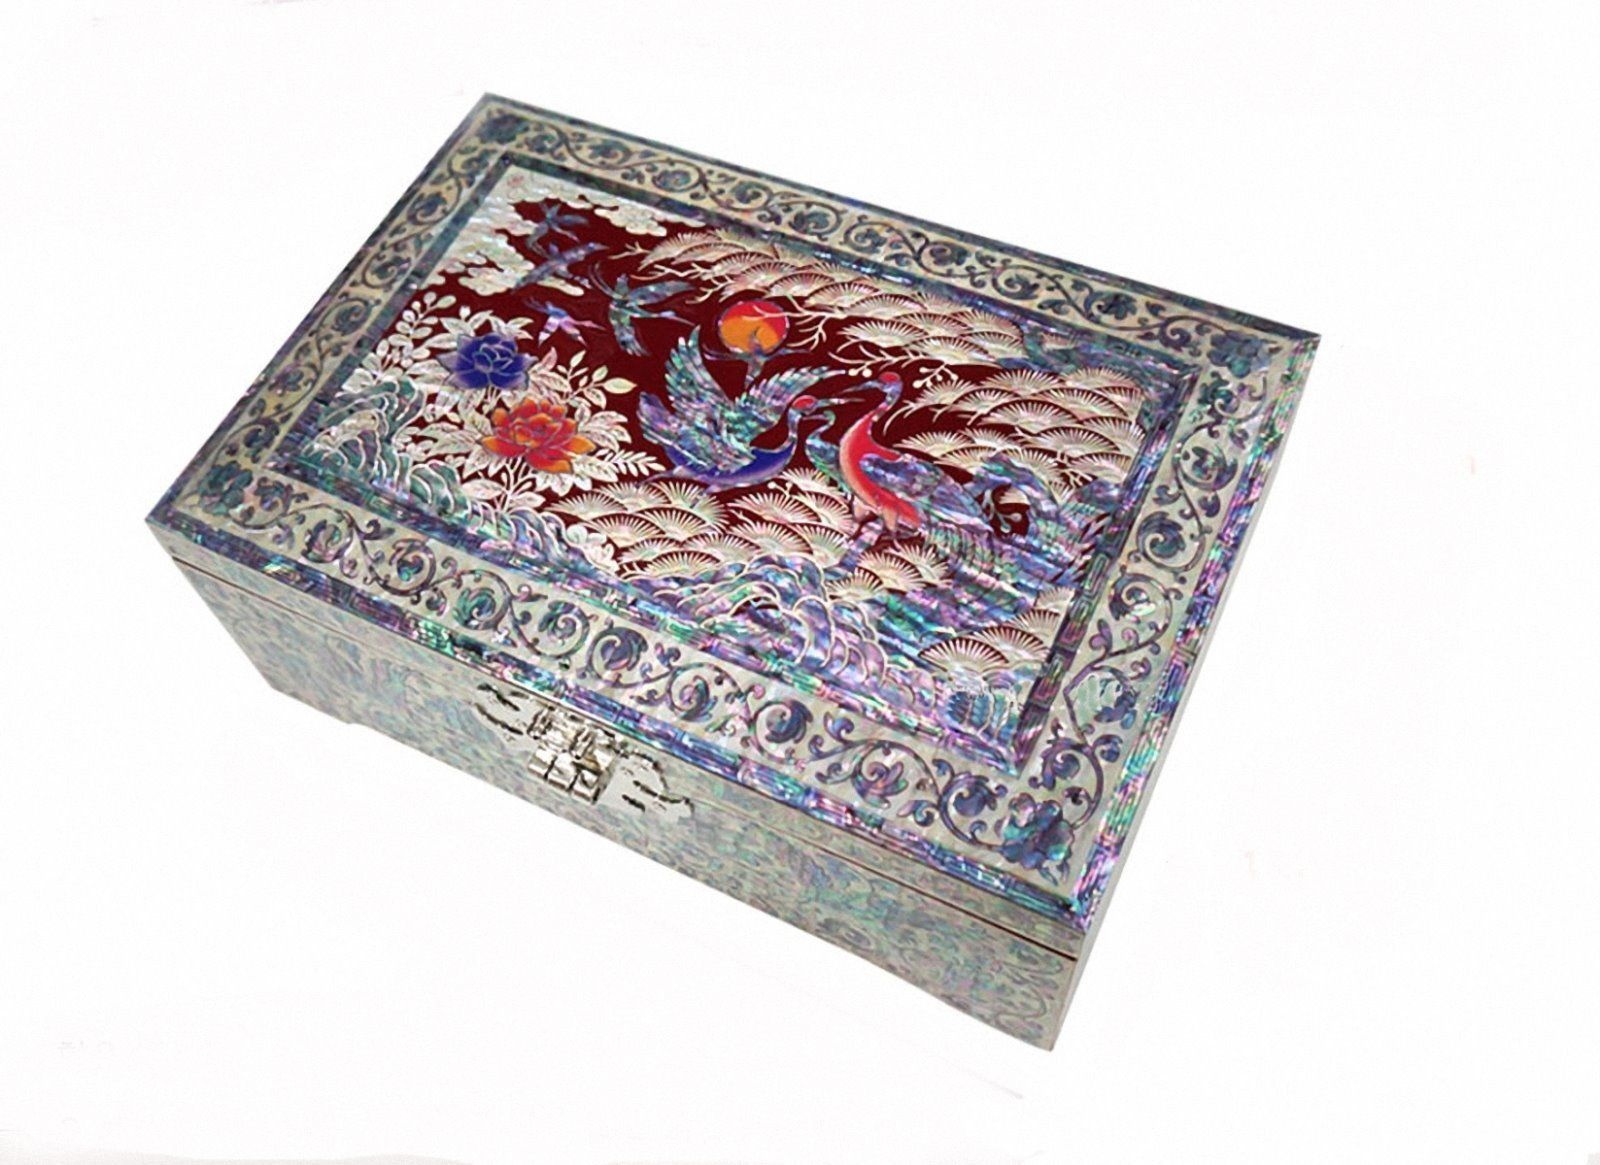 Mother of pearl trinket jewelry box jewel case organizer crane &pinetree red